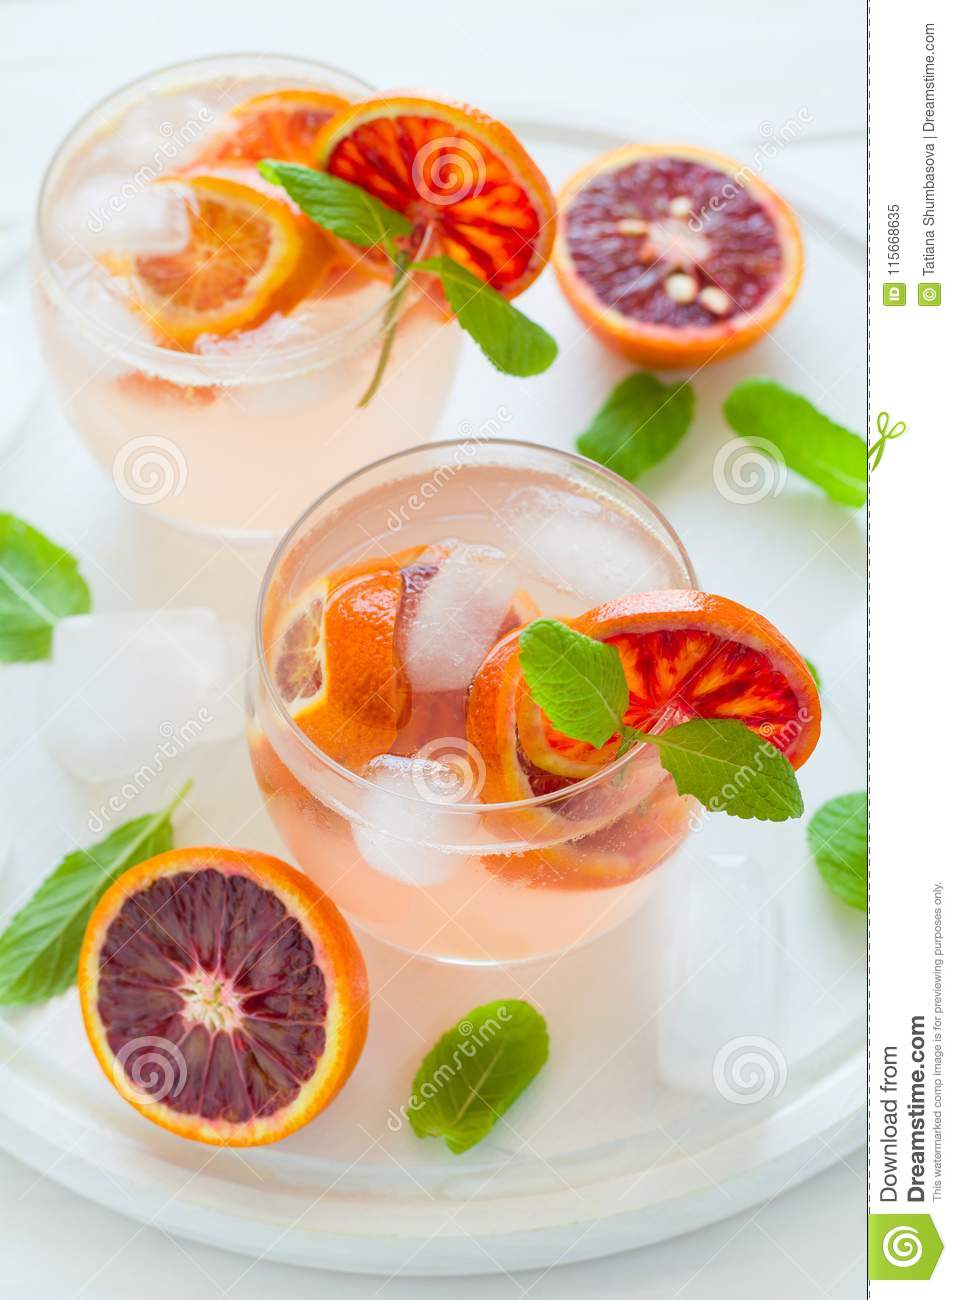 Blood orange cocktail with slices of orange